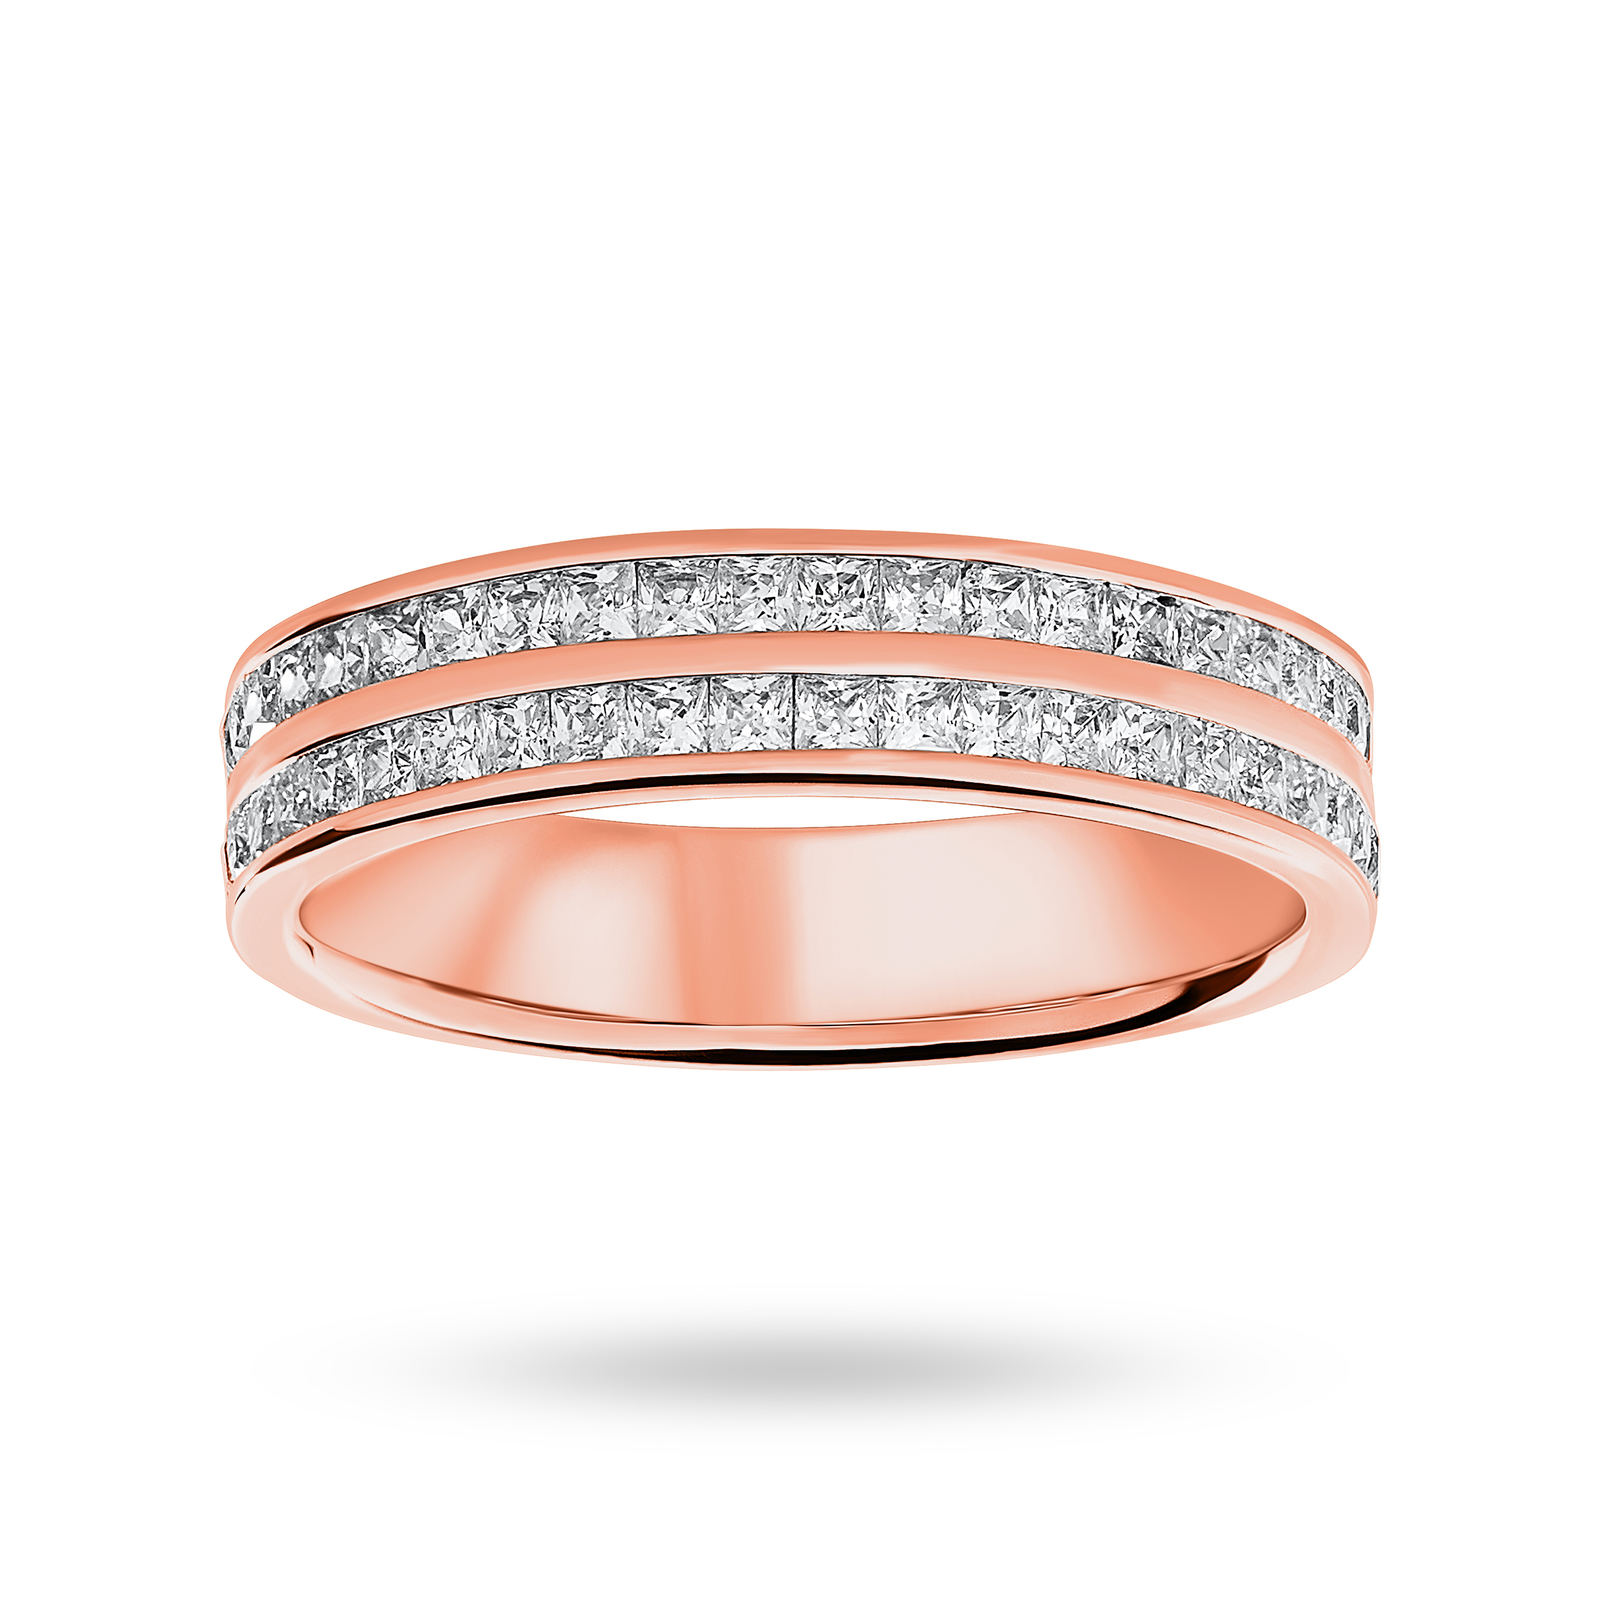 18 Carat Rose Gold 0.75 Carat Princess Cut 2 Row Half Eternity Ring